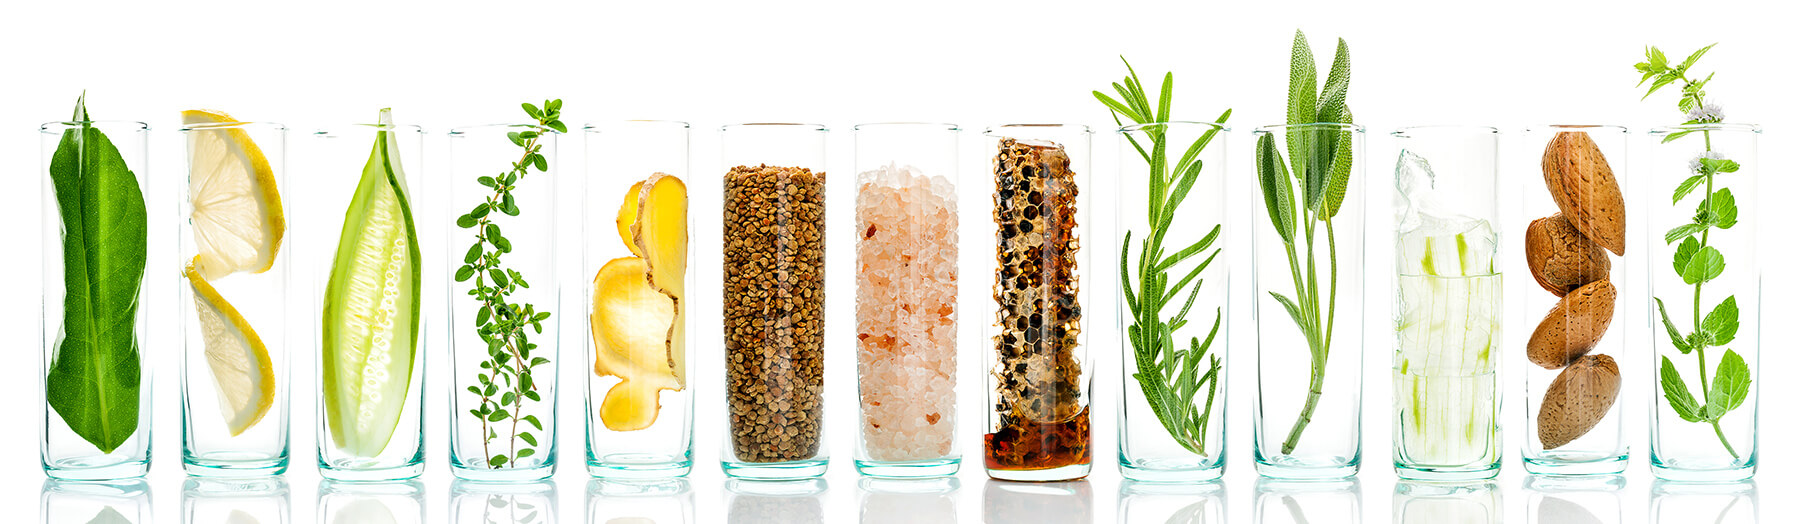 various ingredients in clear glasses